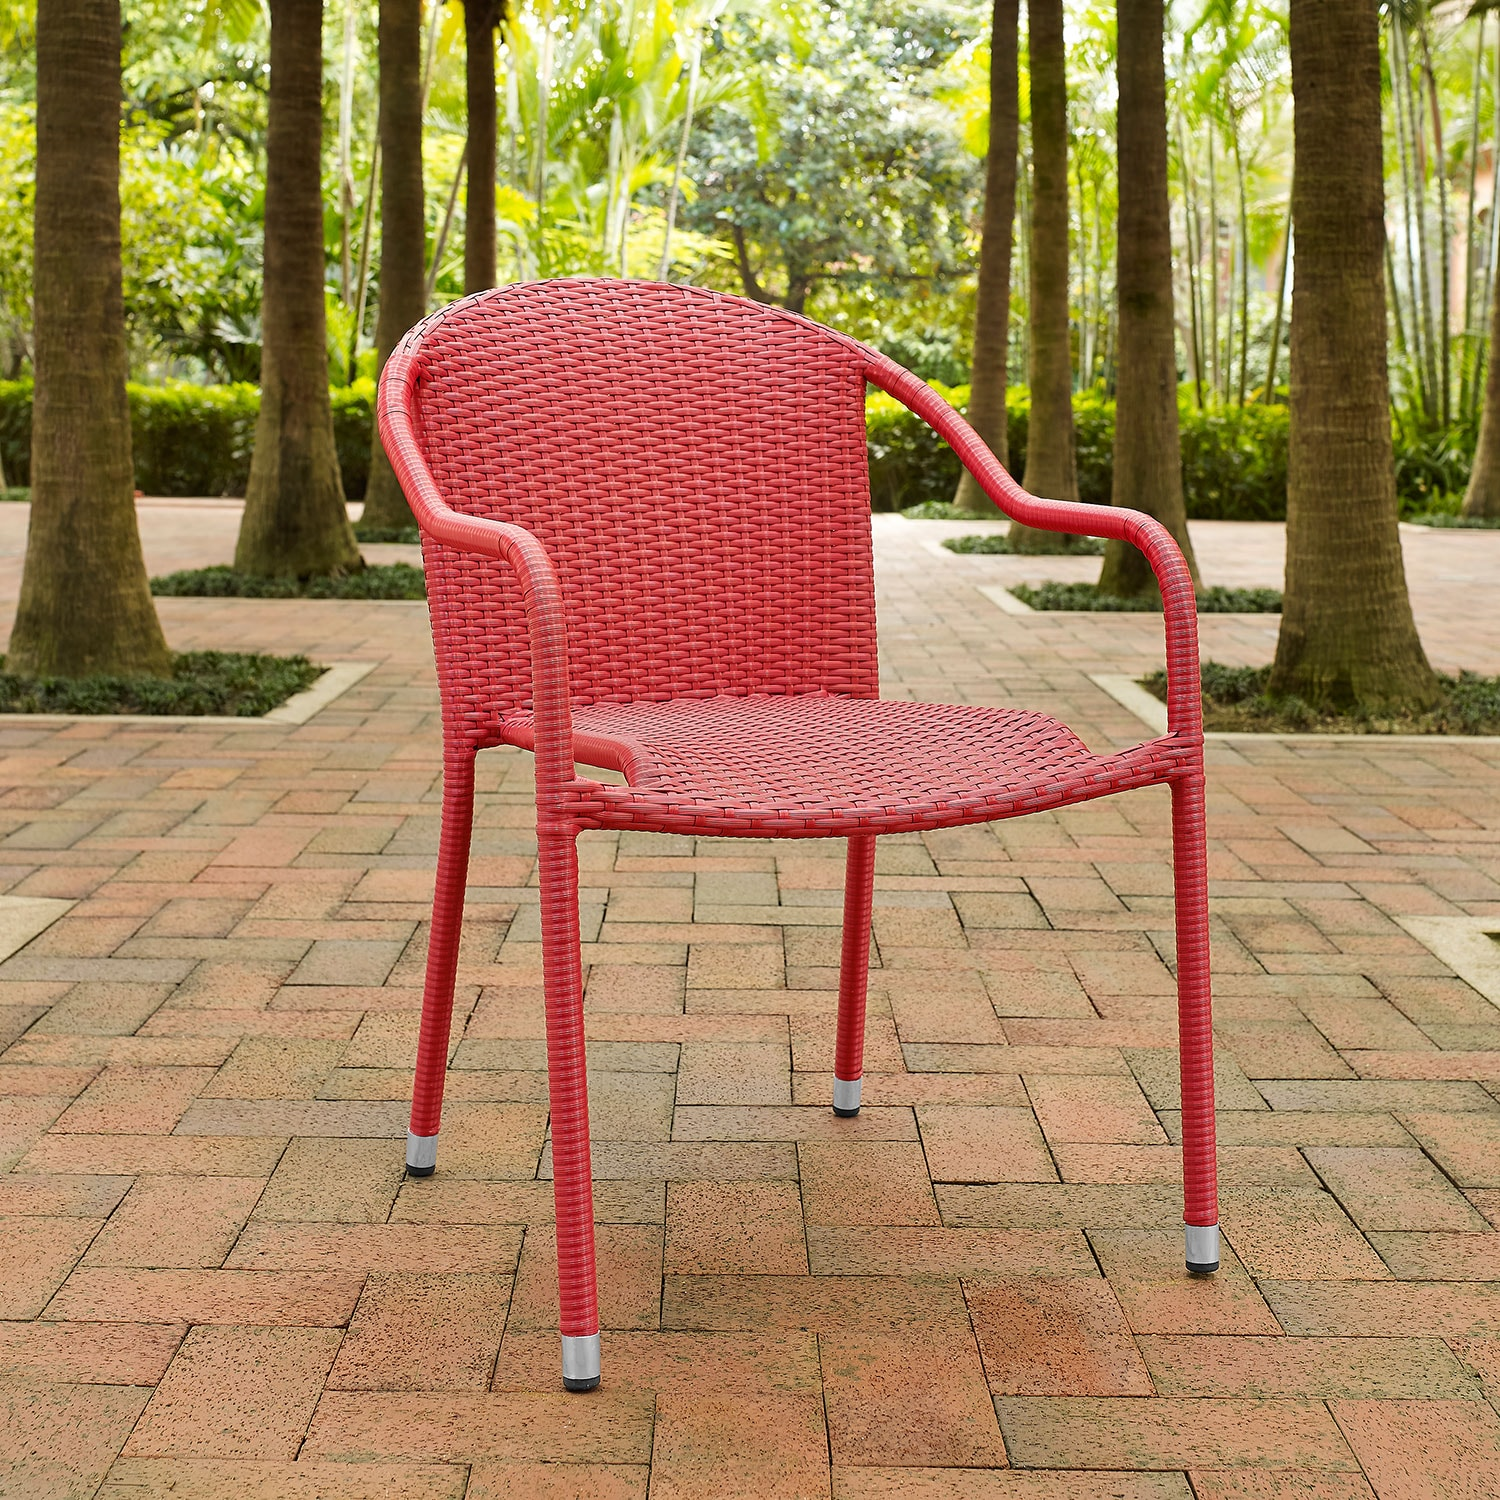 Outdoor Furniture - Aldo Set of 4 Stackable Outdoor Arm Chairs - Red